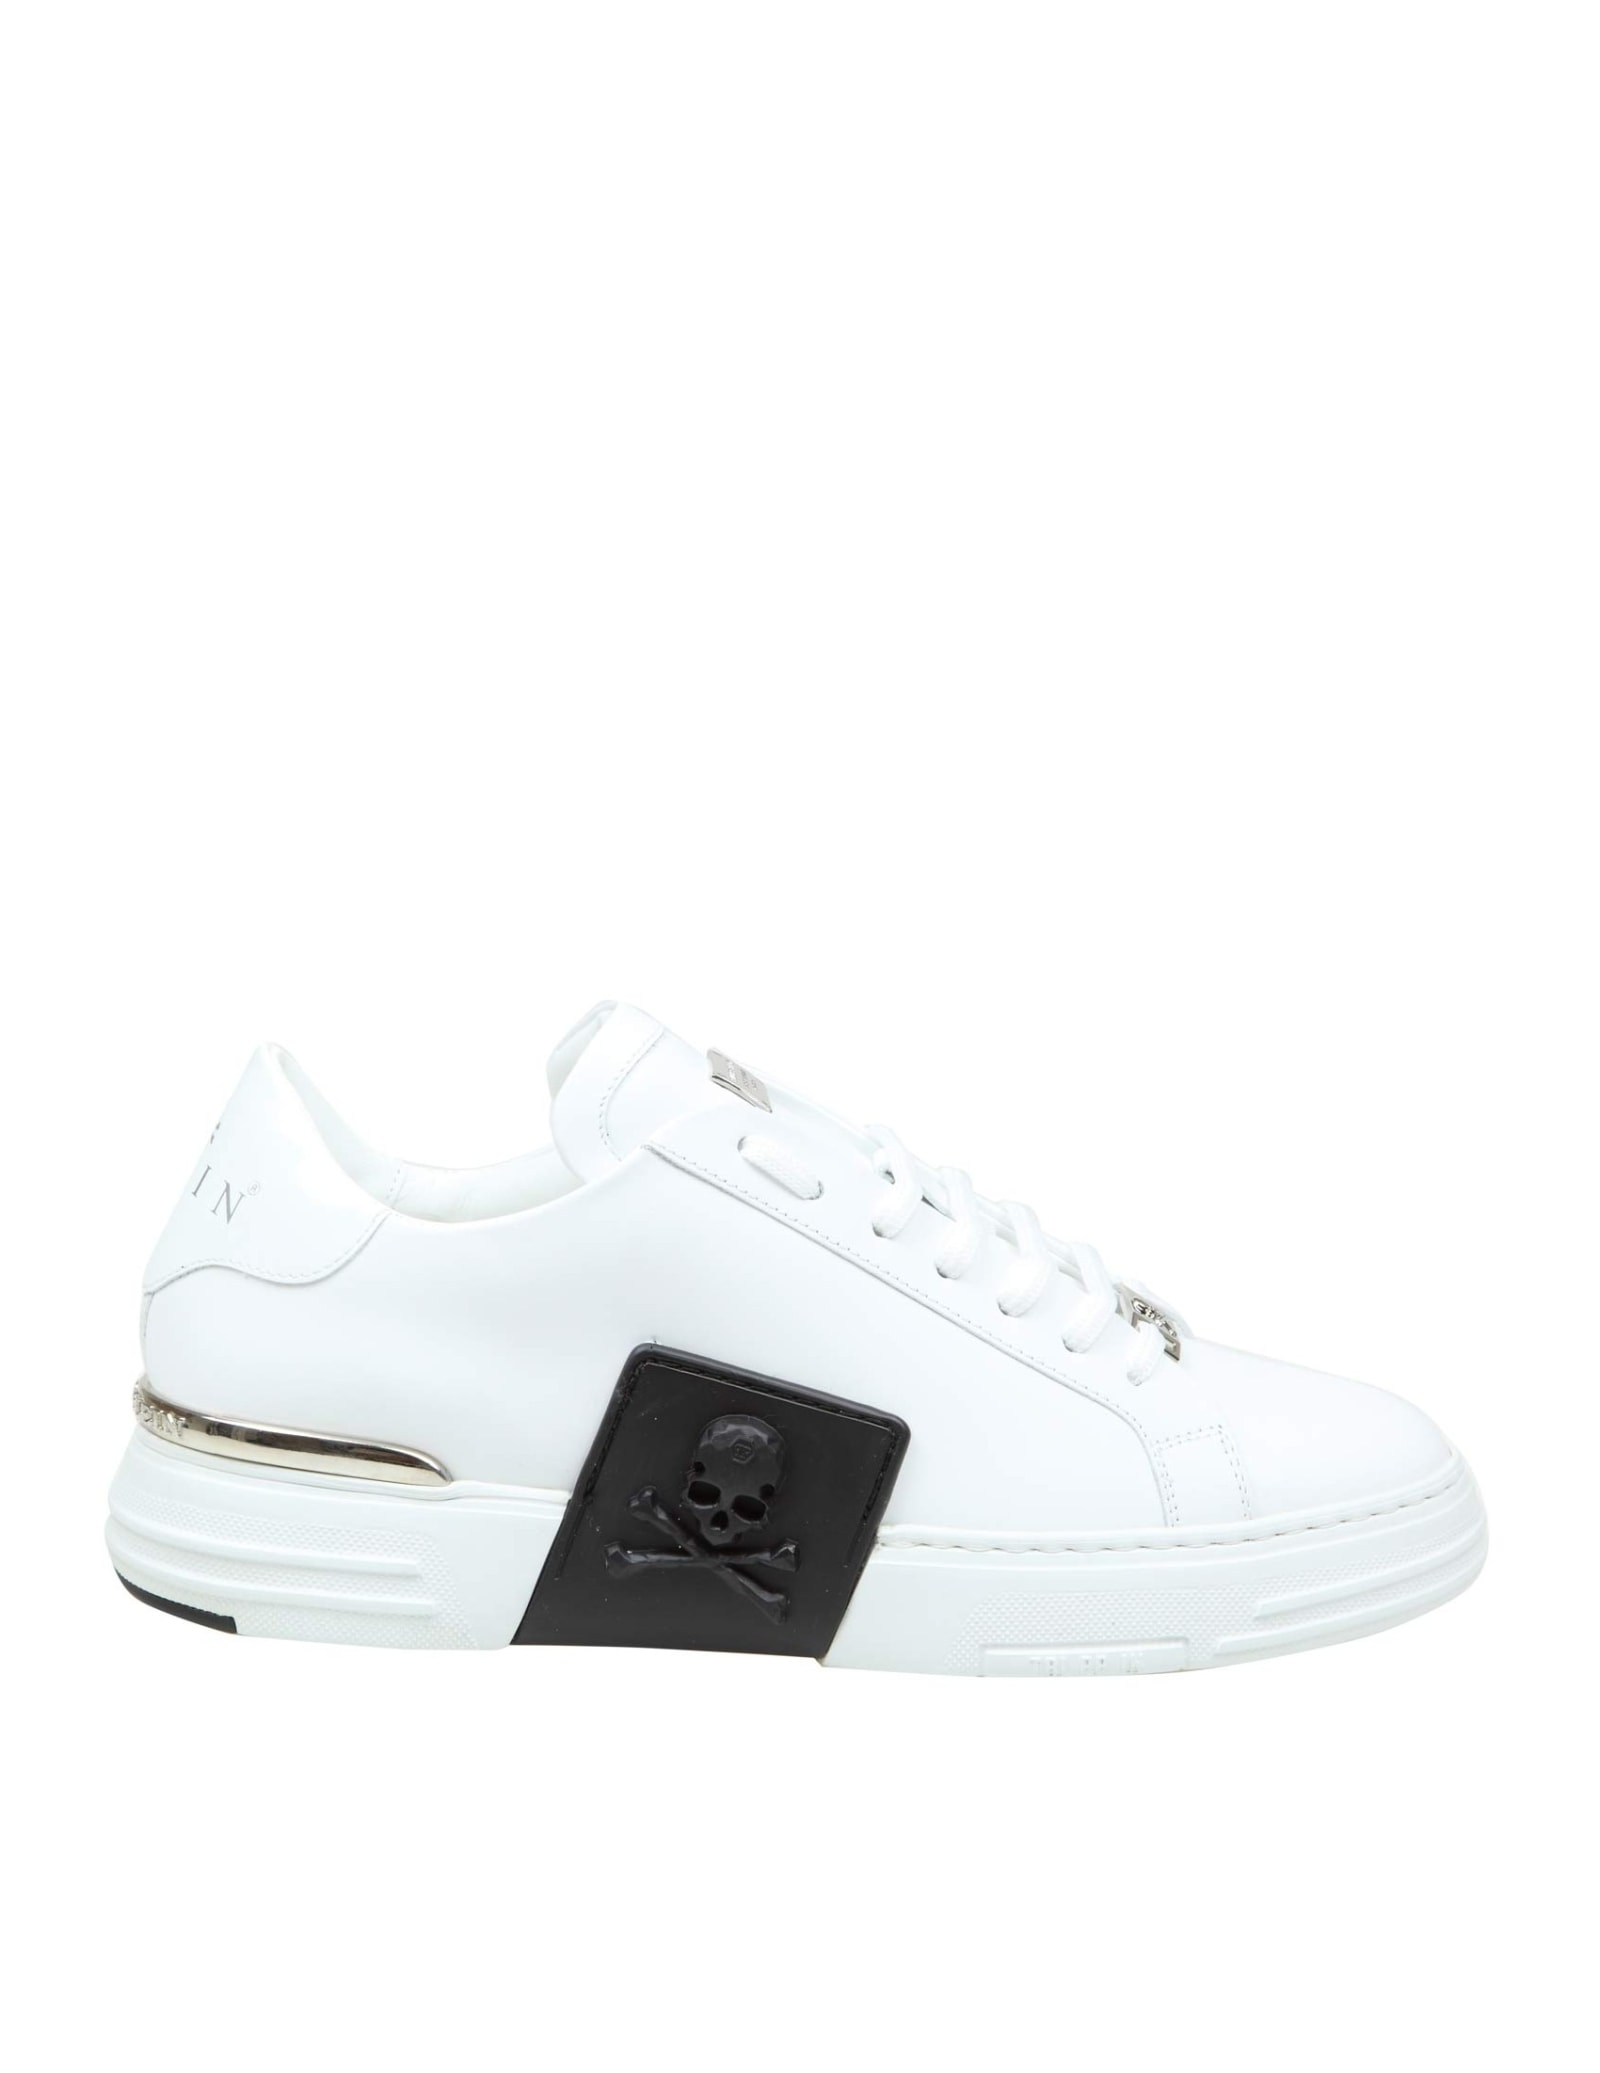 Philipp Plein SNEAKER LO-TOP PHANTOM KICK $ RUBBERIZED IN WHITE LEATHER